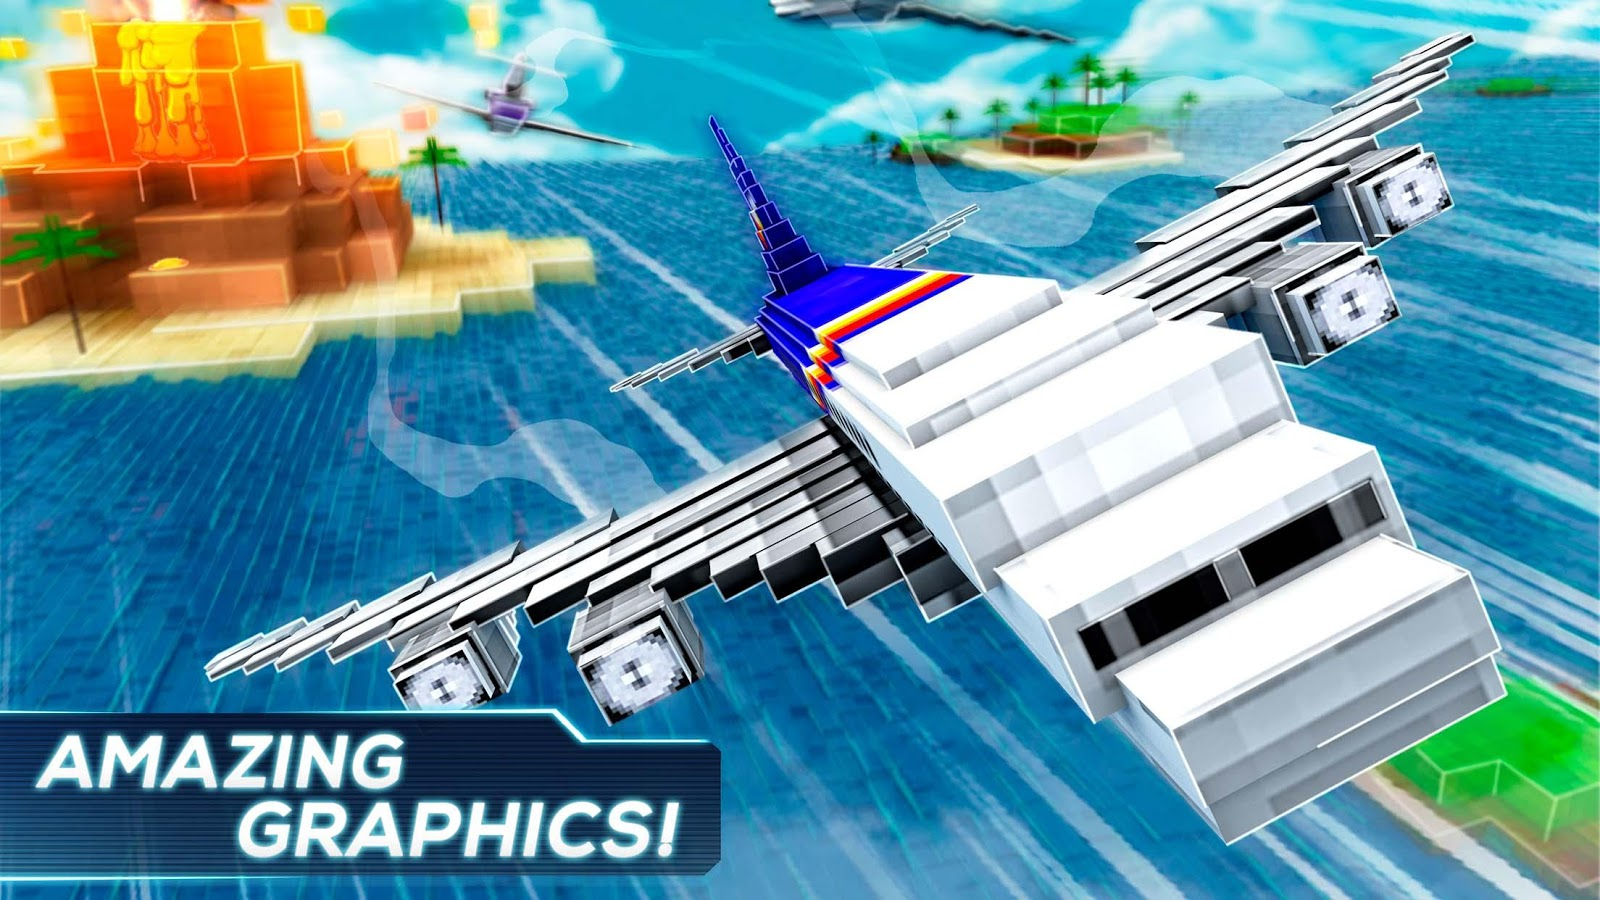 Airplane Games - Play Airplane Games on Free Online Games